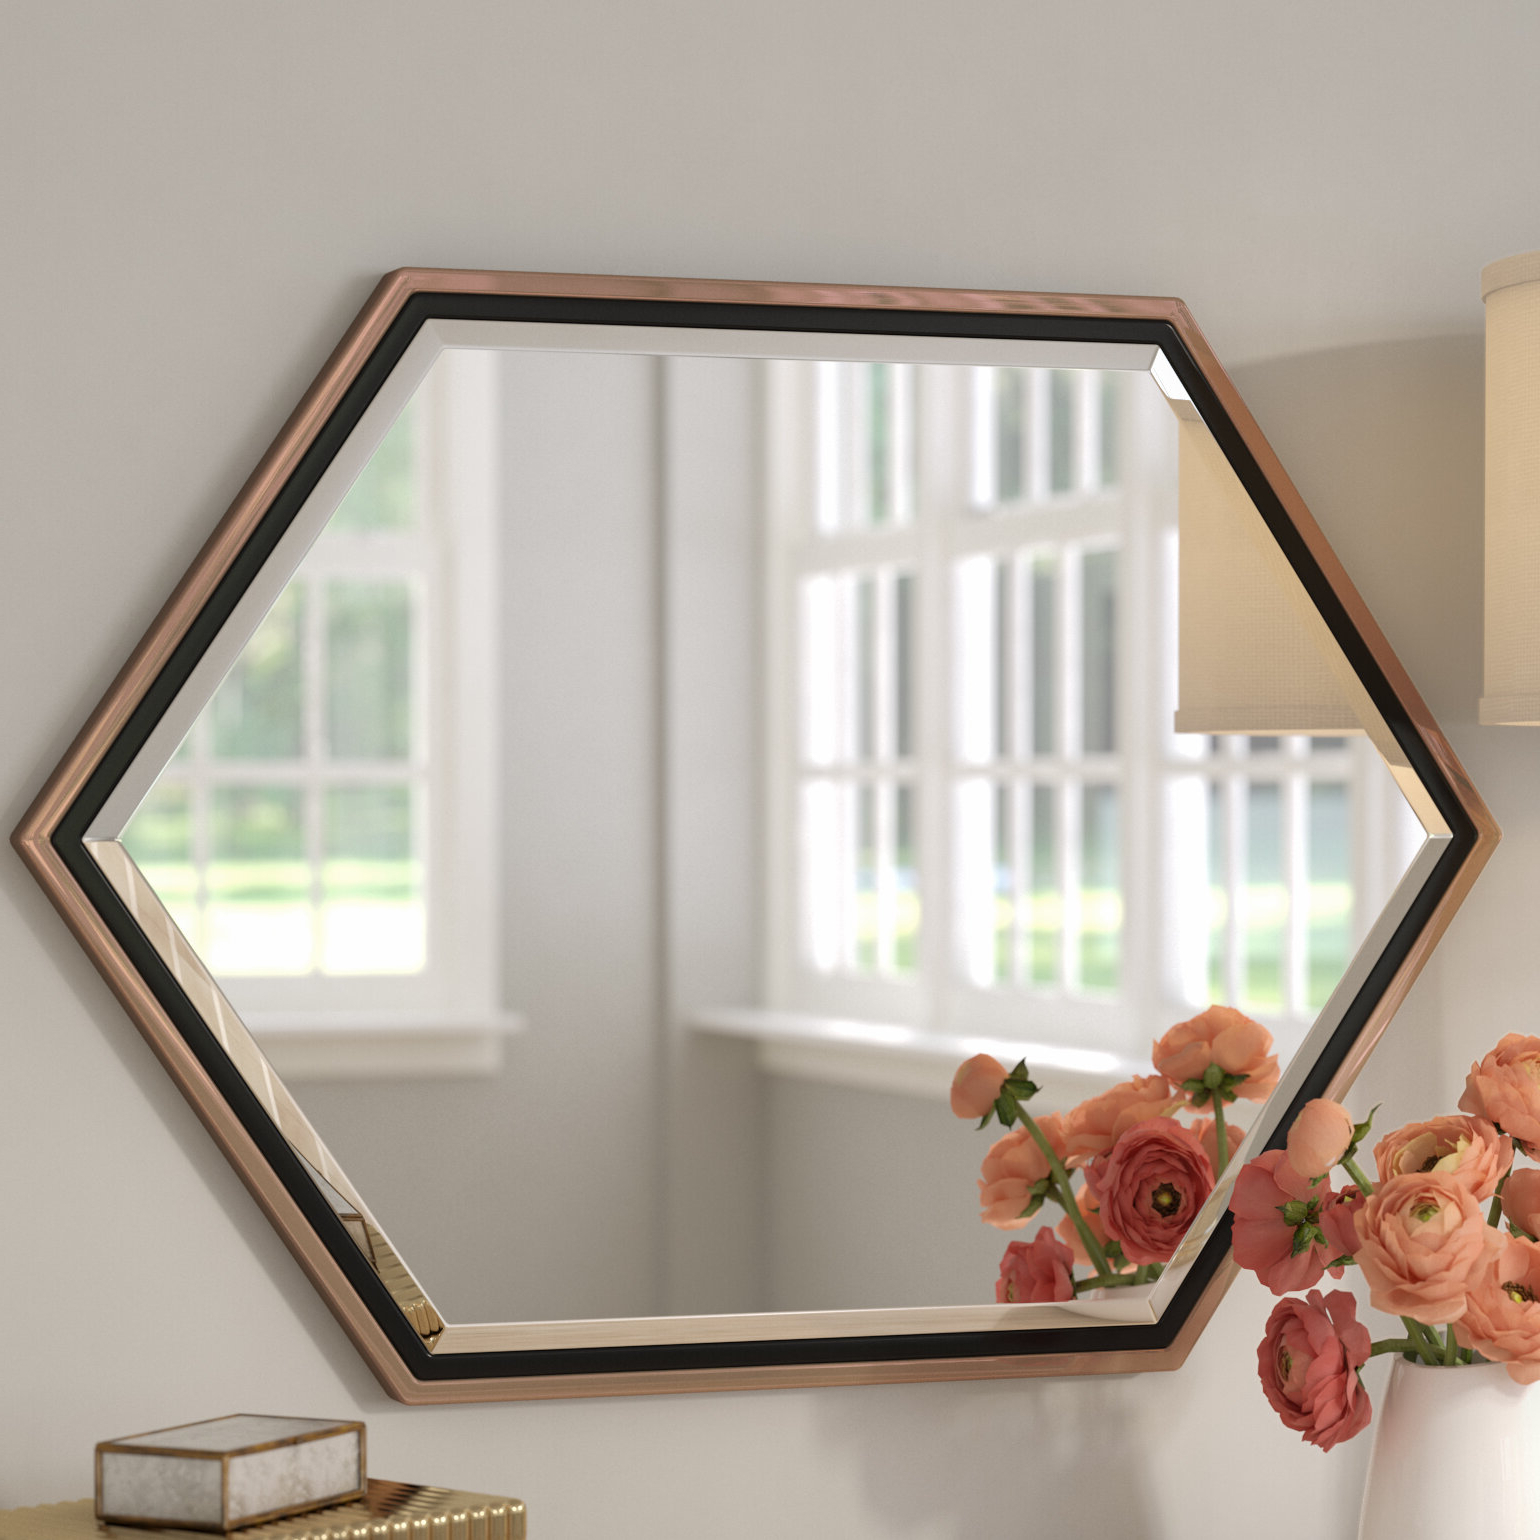 Fashionable Contemporary Metal Frame Accent Wall Mirror Pertaining To Entryway Wall Mirrors (View 8 of 20)